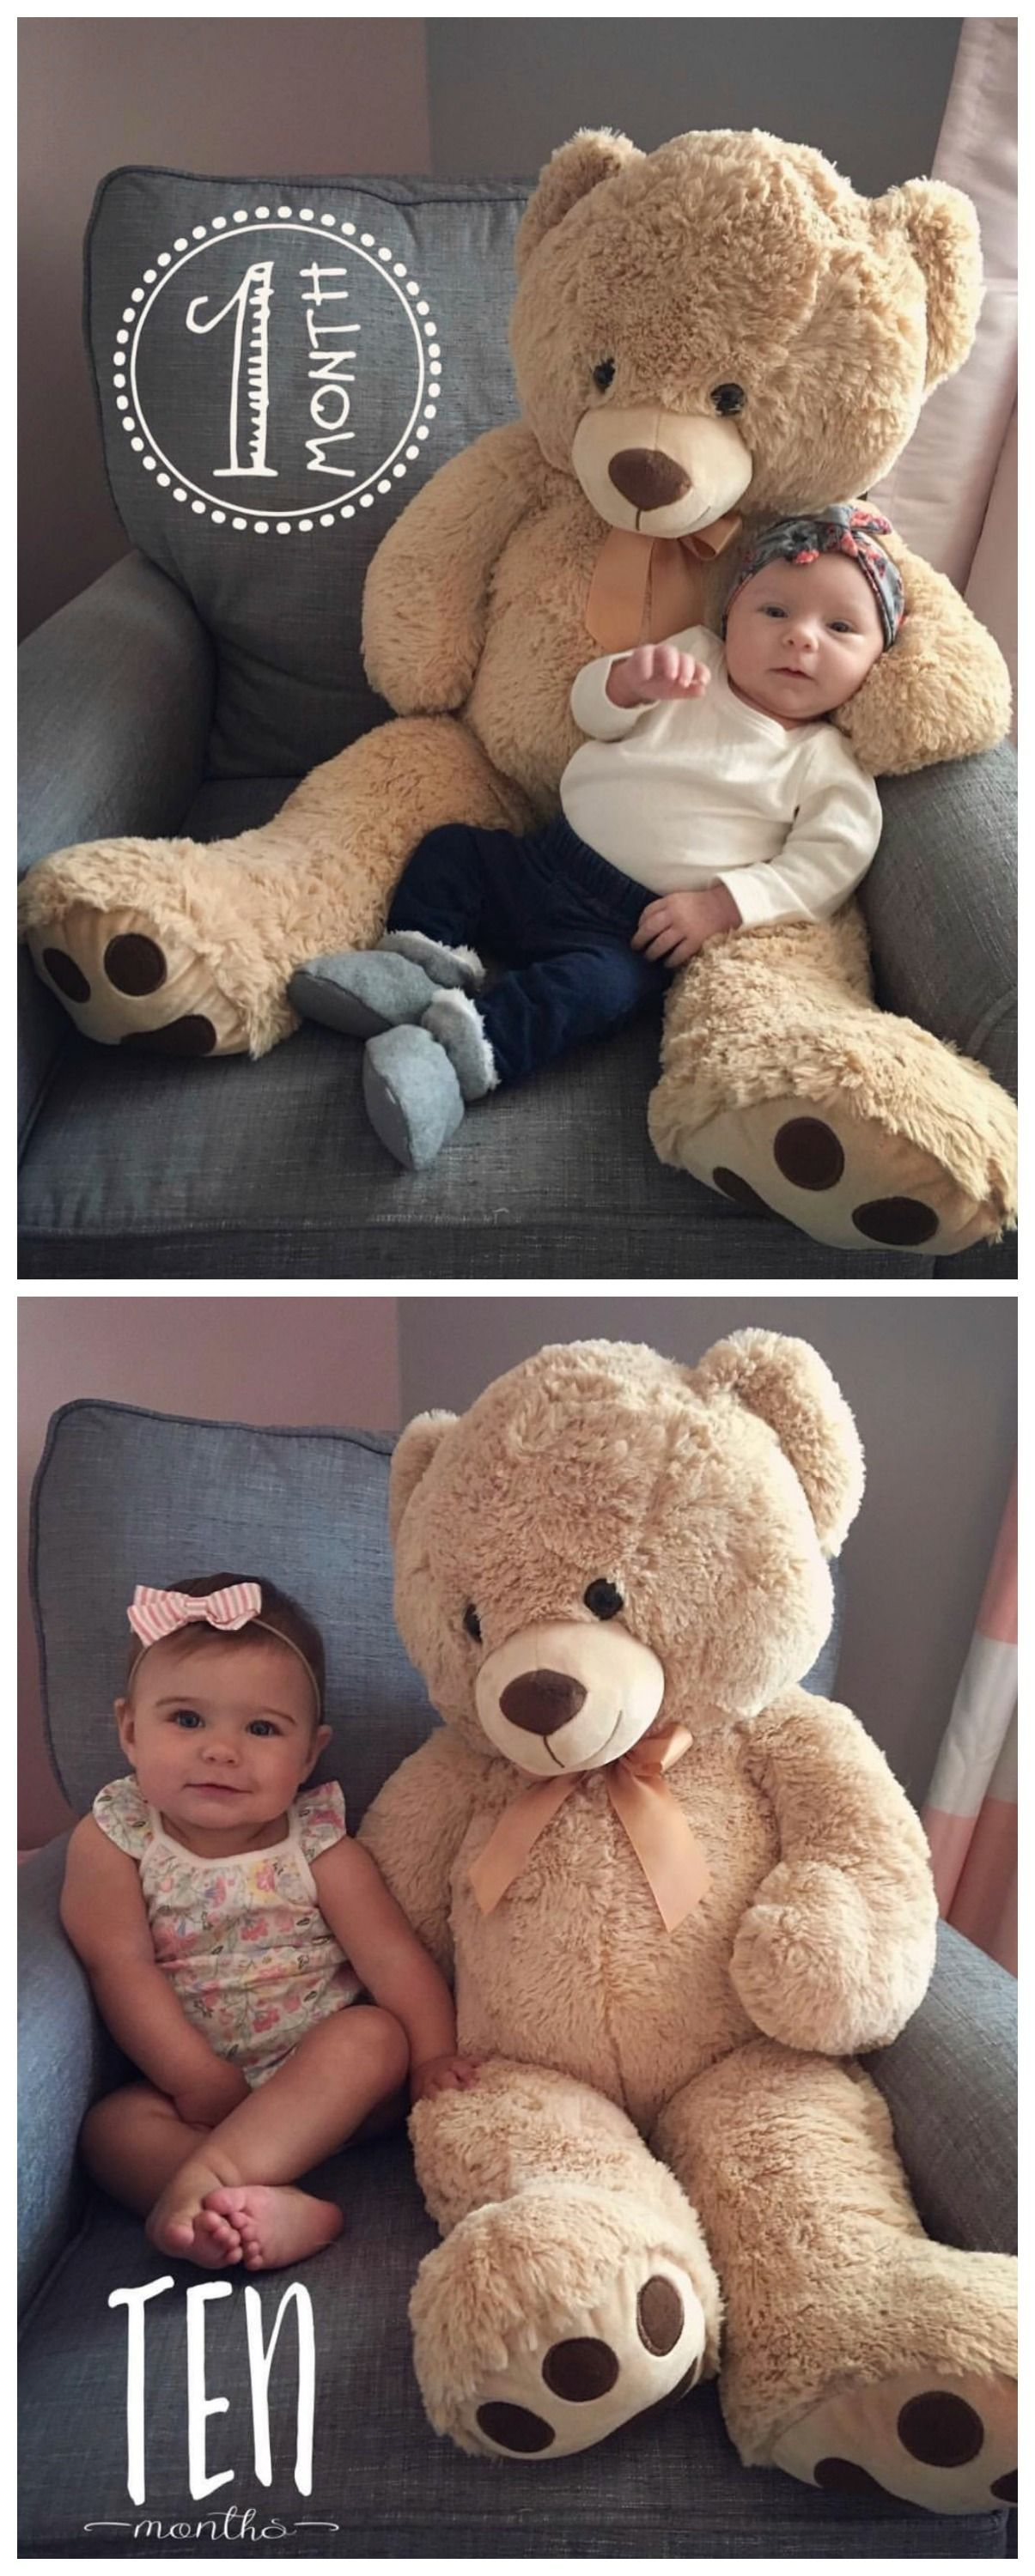 Predownload: Monthly Baby Photos With A Stuffed Animal So Cute We Love Seeing Your Babies Growth Each Mon Baby Milestones Pictures Baby Month By Month Monthly Baby Photos [ 3000 x 1205 Pixel ]